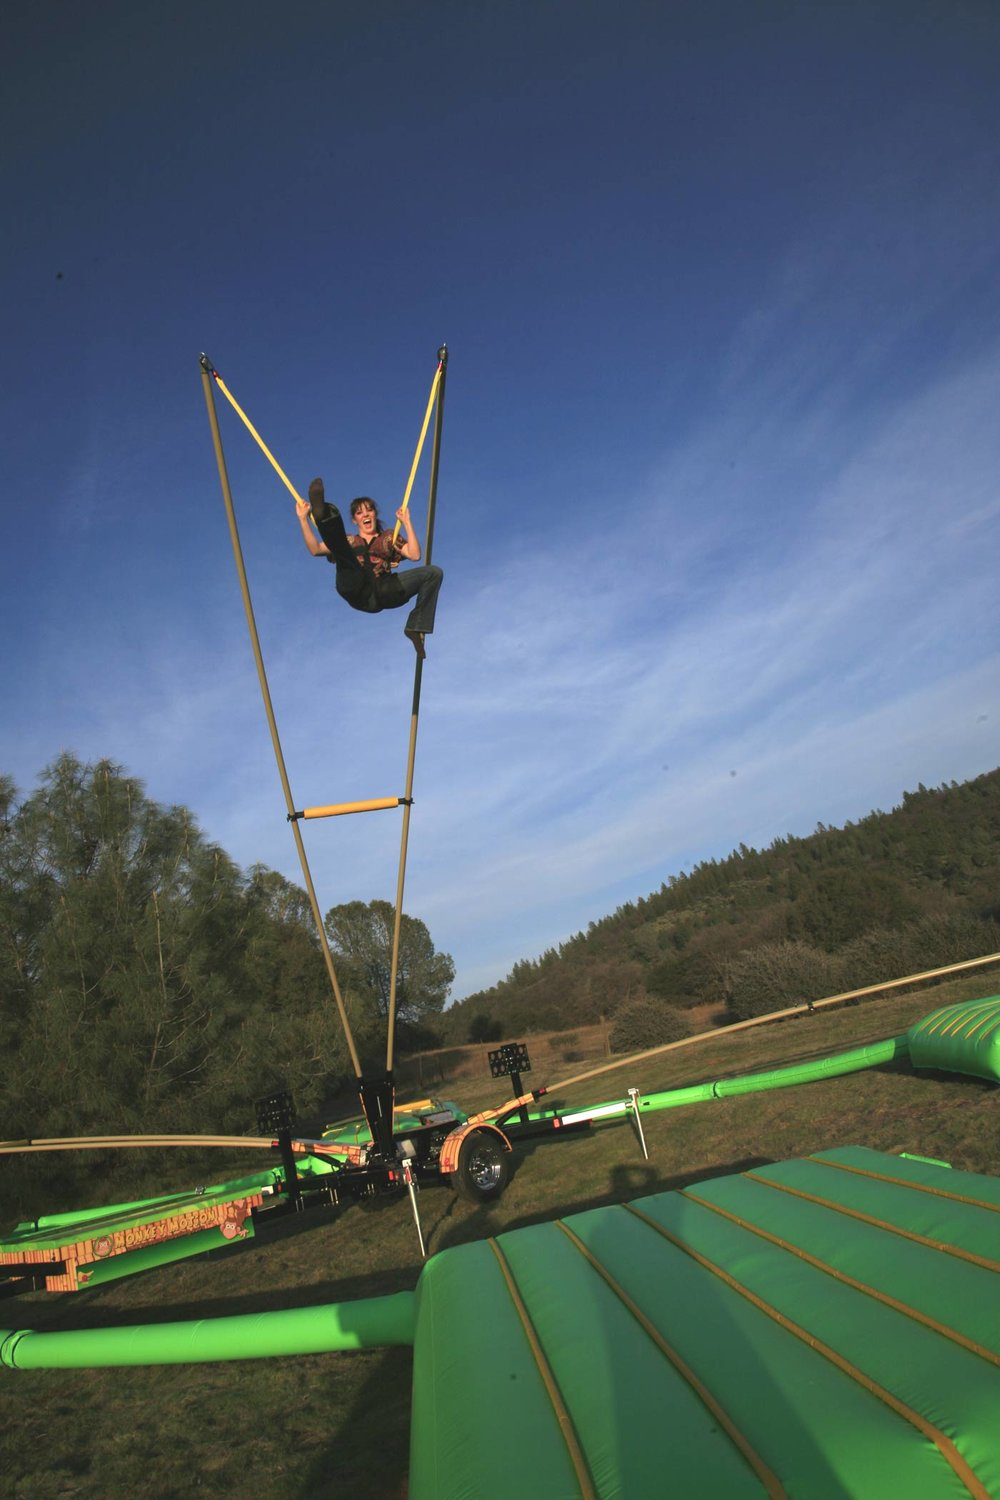 BUNGEE TRAMPS x 2 $880 (3 hour metro hire) including operator